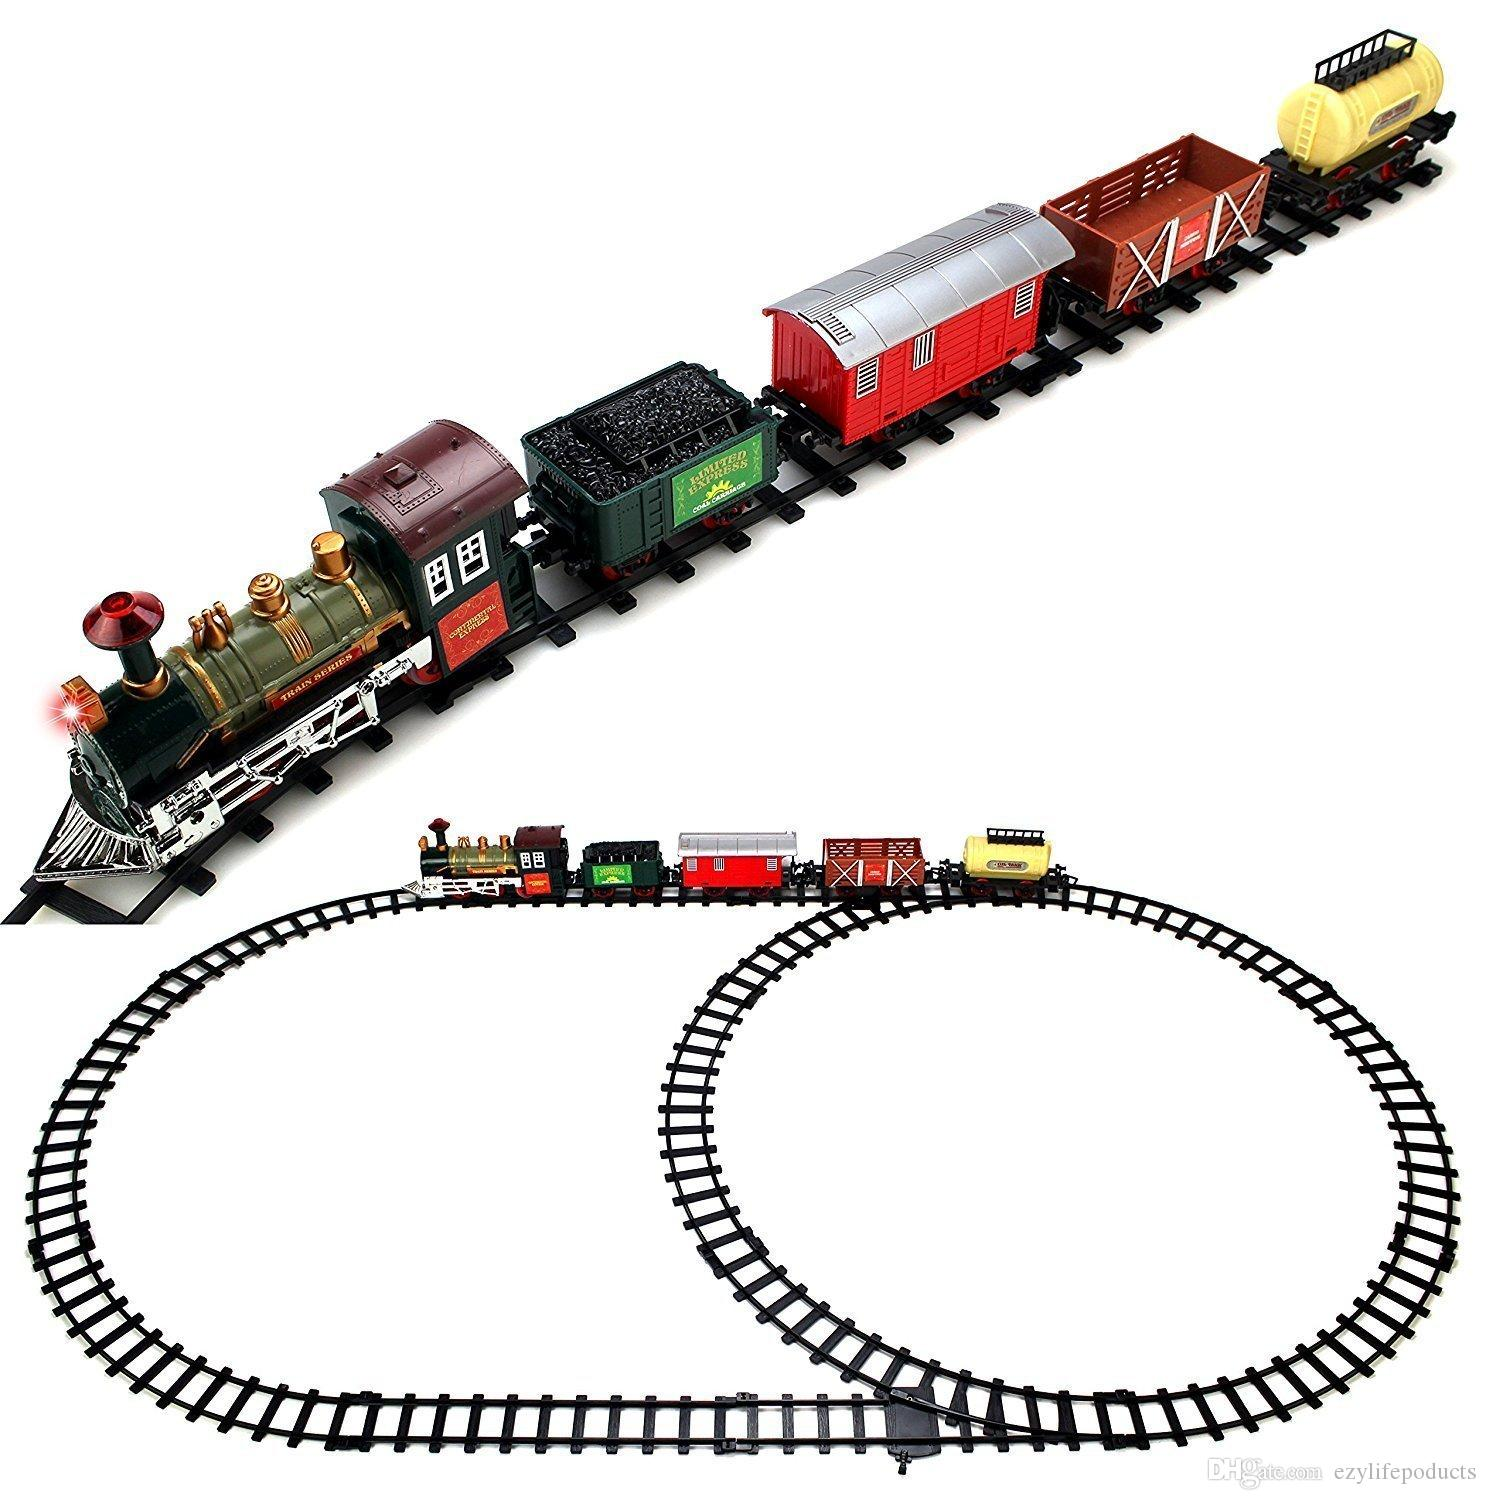 Winsome Rail Track Set Batteries Operated Toy Train Set 2018 Train 2 Year S Rail Track Set Batteries Operated Toy Train Set Toy Train Sets 2018 Train 3 Year S Toy Train Sets baby Toy Train Sets